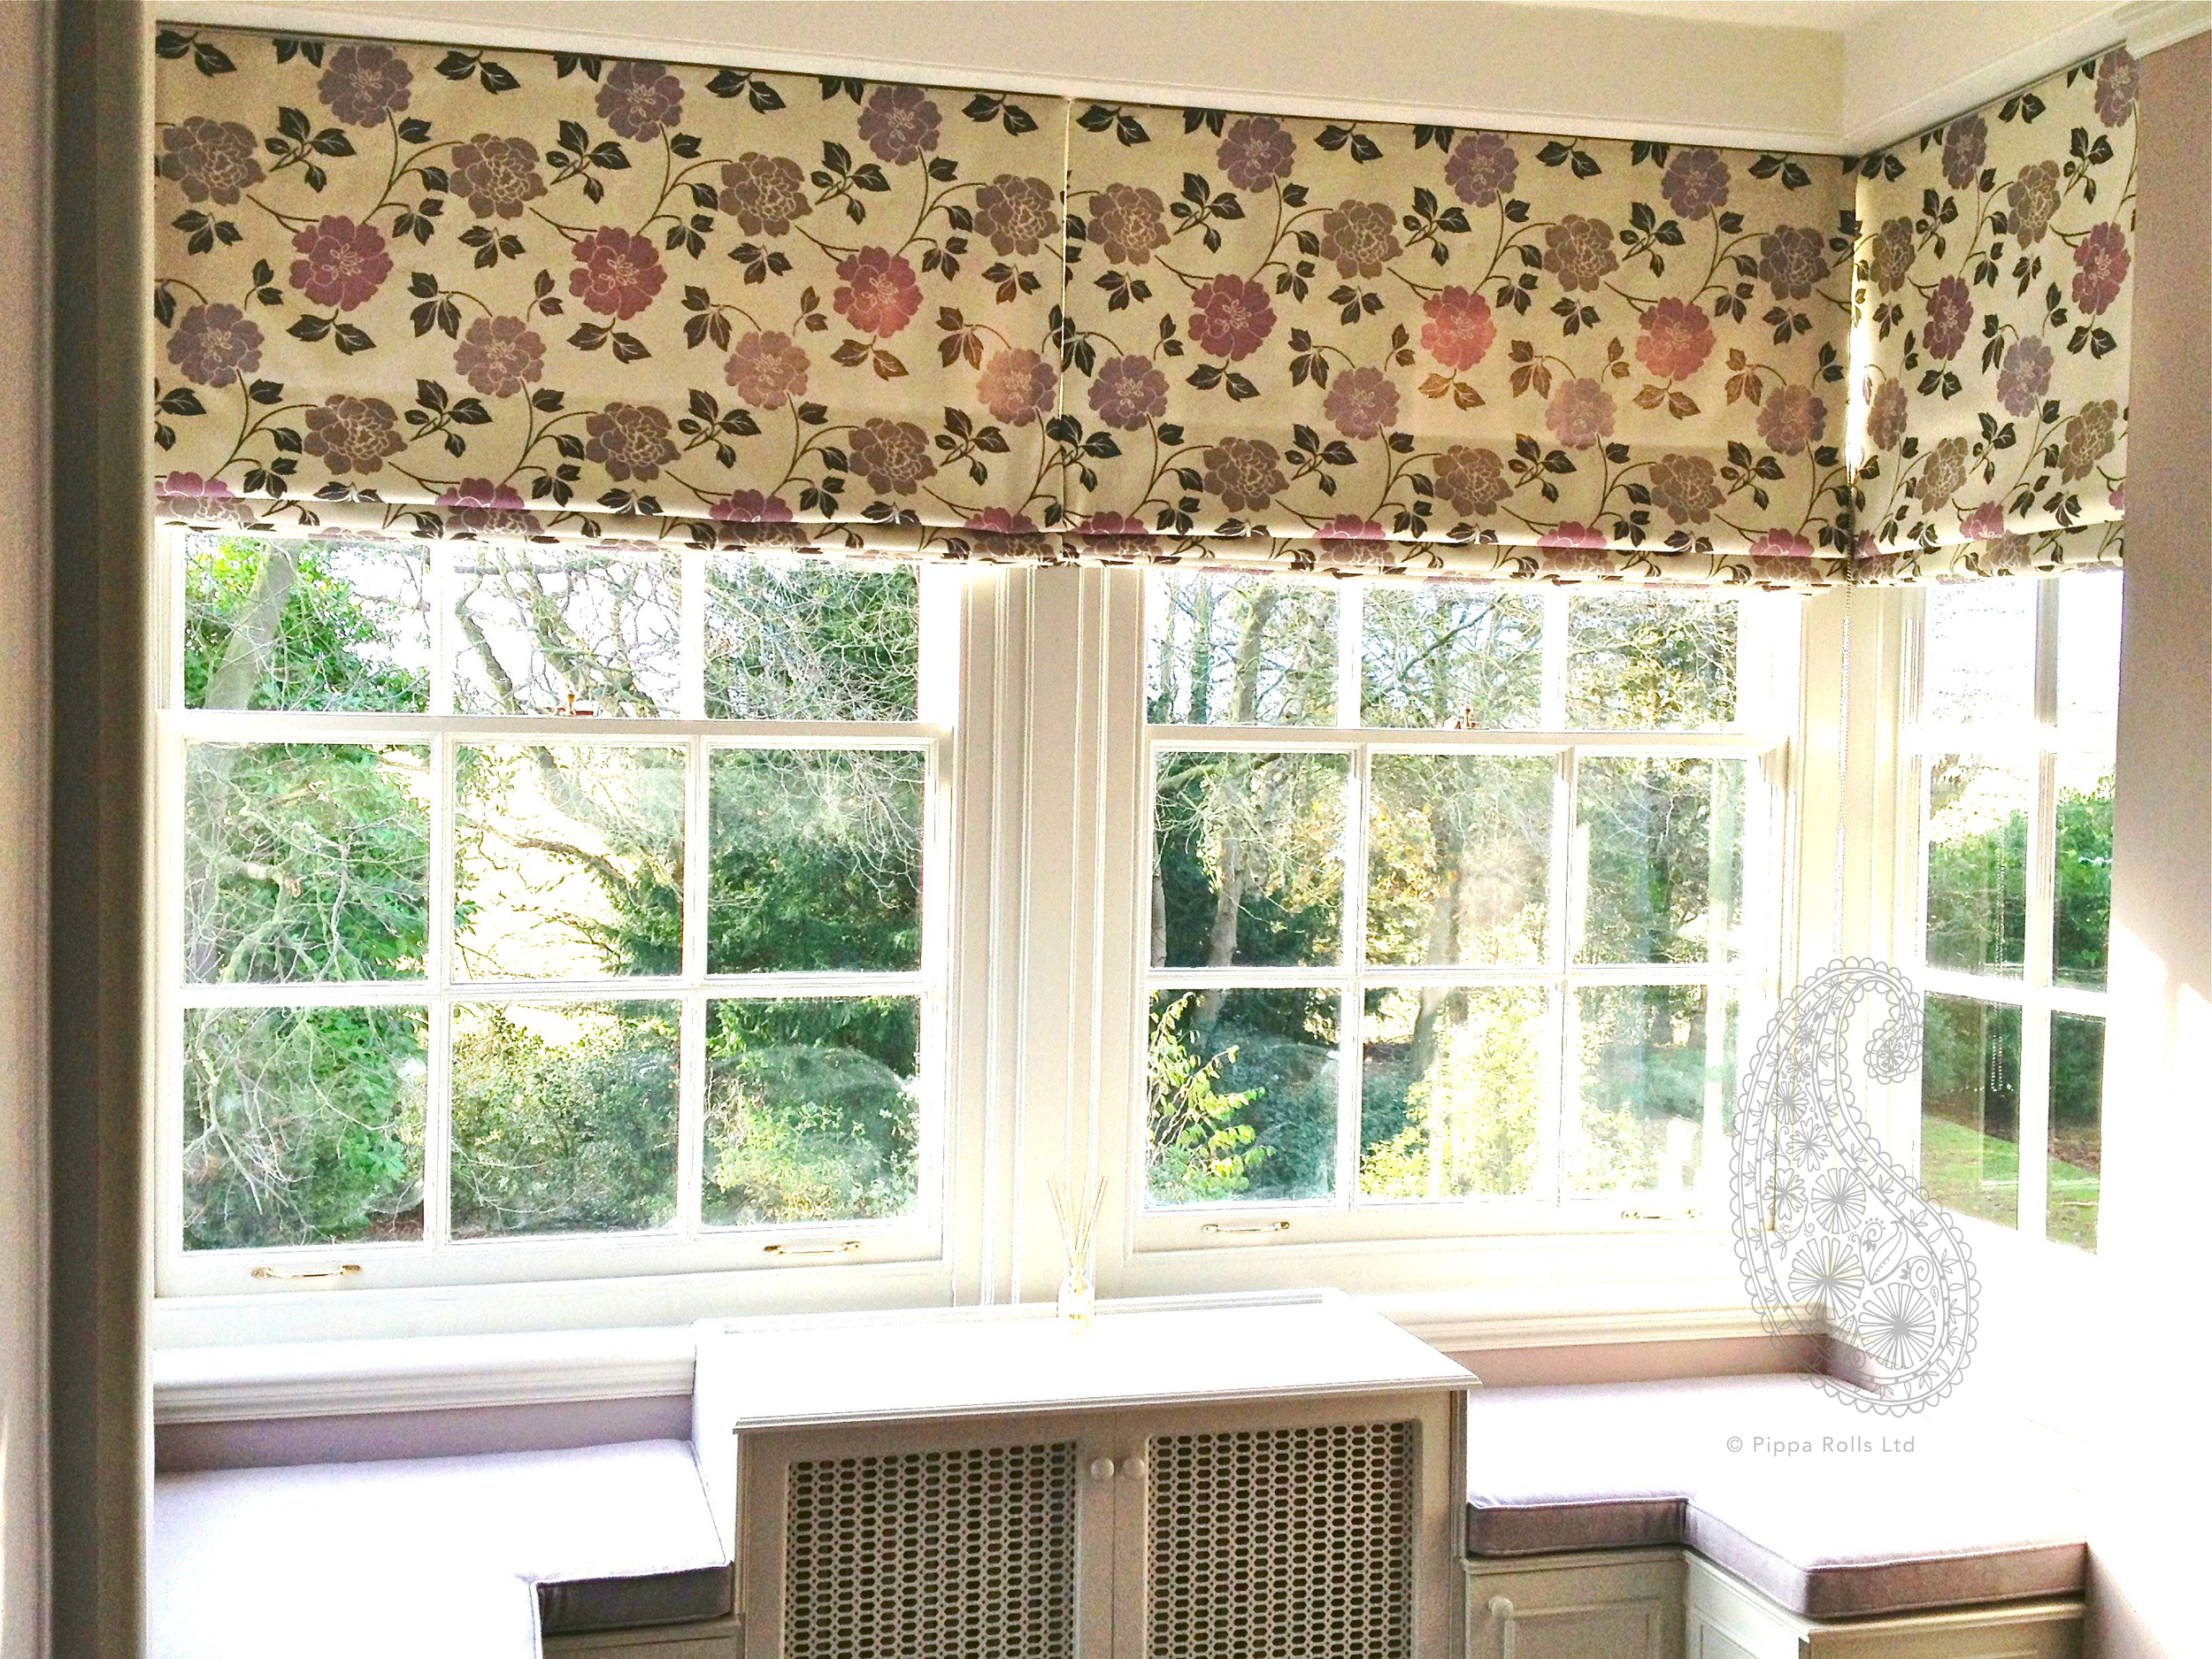 inside square bay window by Pippa Rolls Limited jpeg.jpg